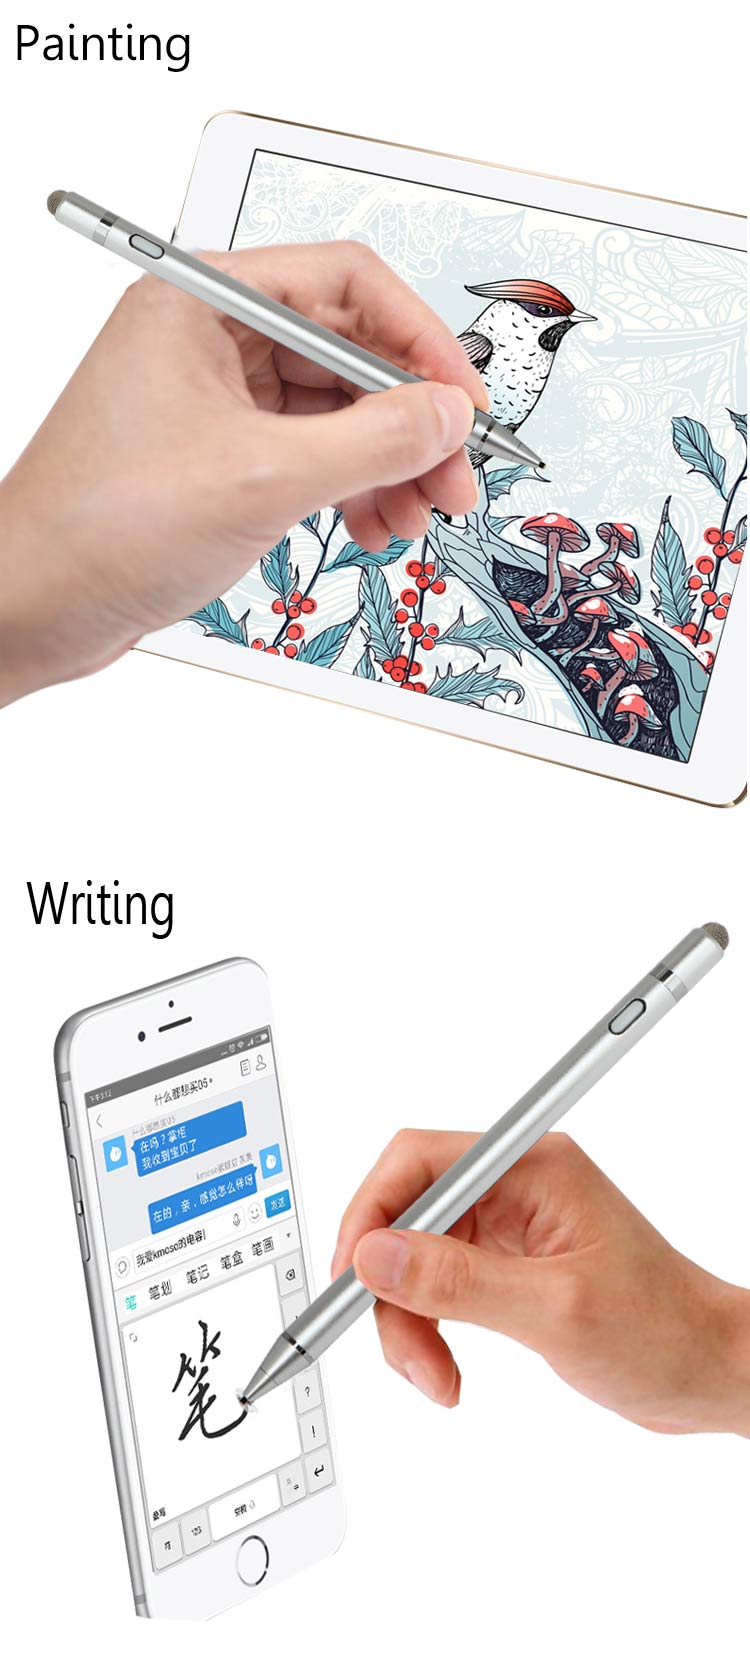 1.45mm Nib Diameter 2 In 1 Active Passive Capacitive Touch Screen Stylus Pen With USB